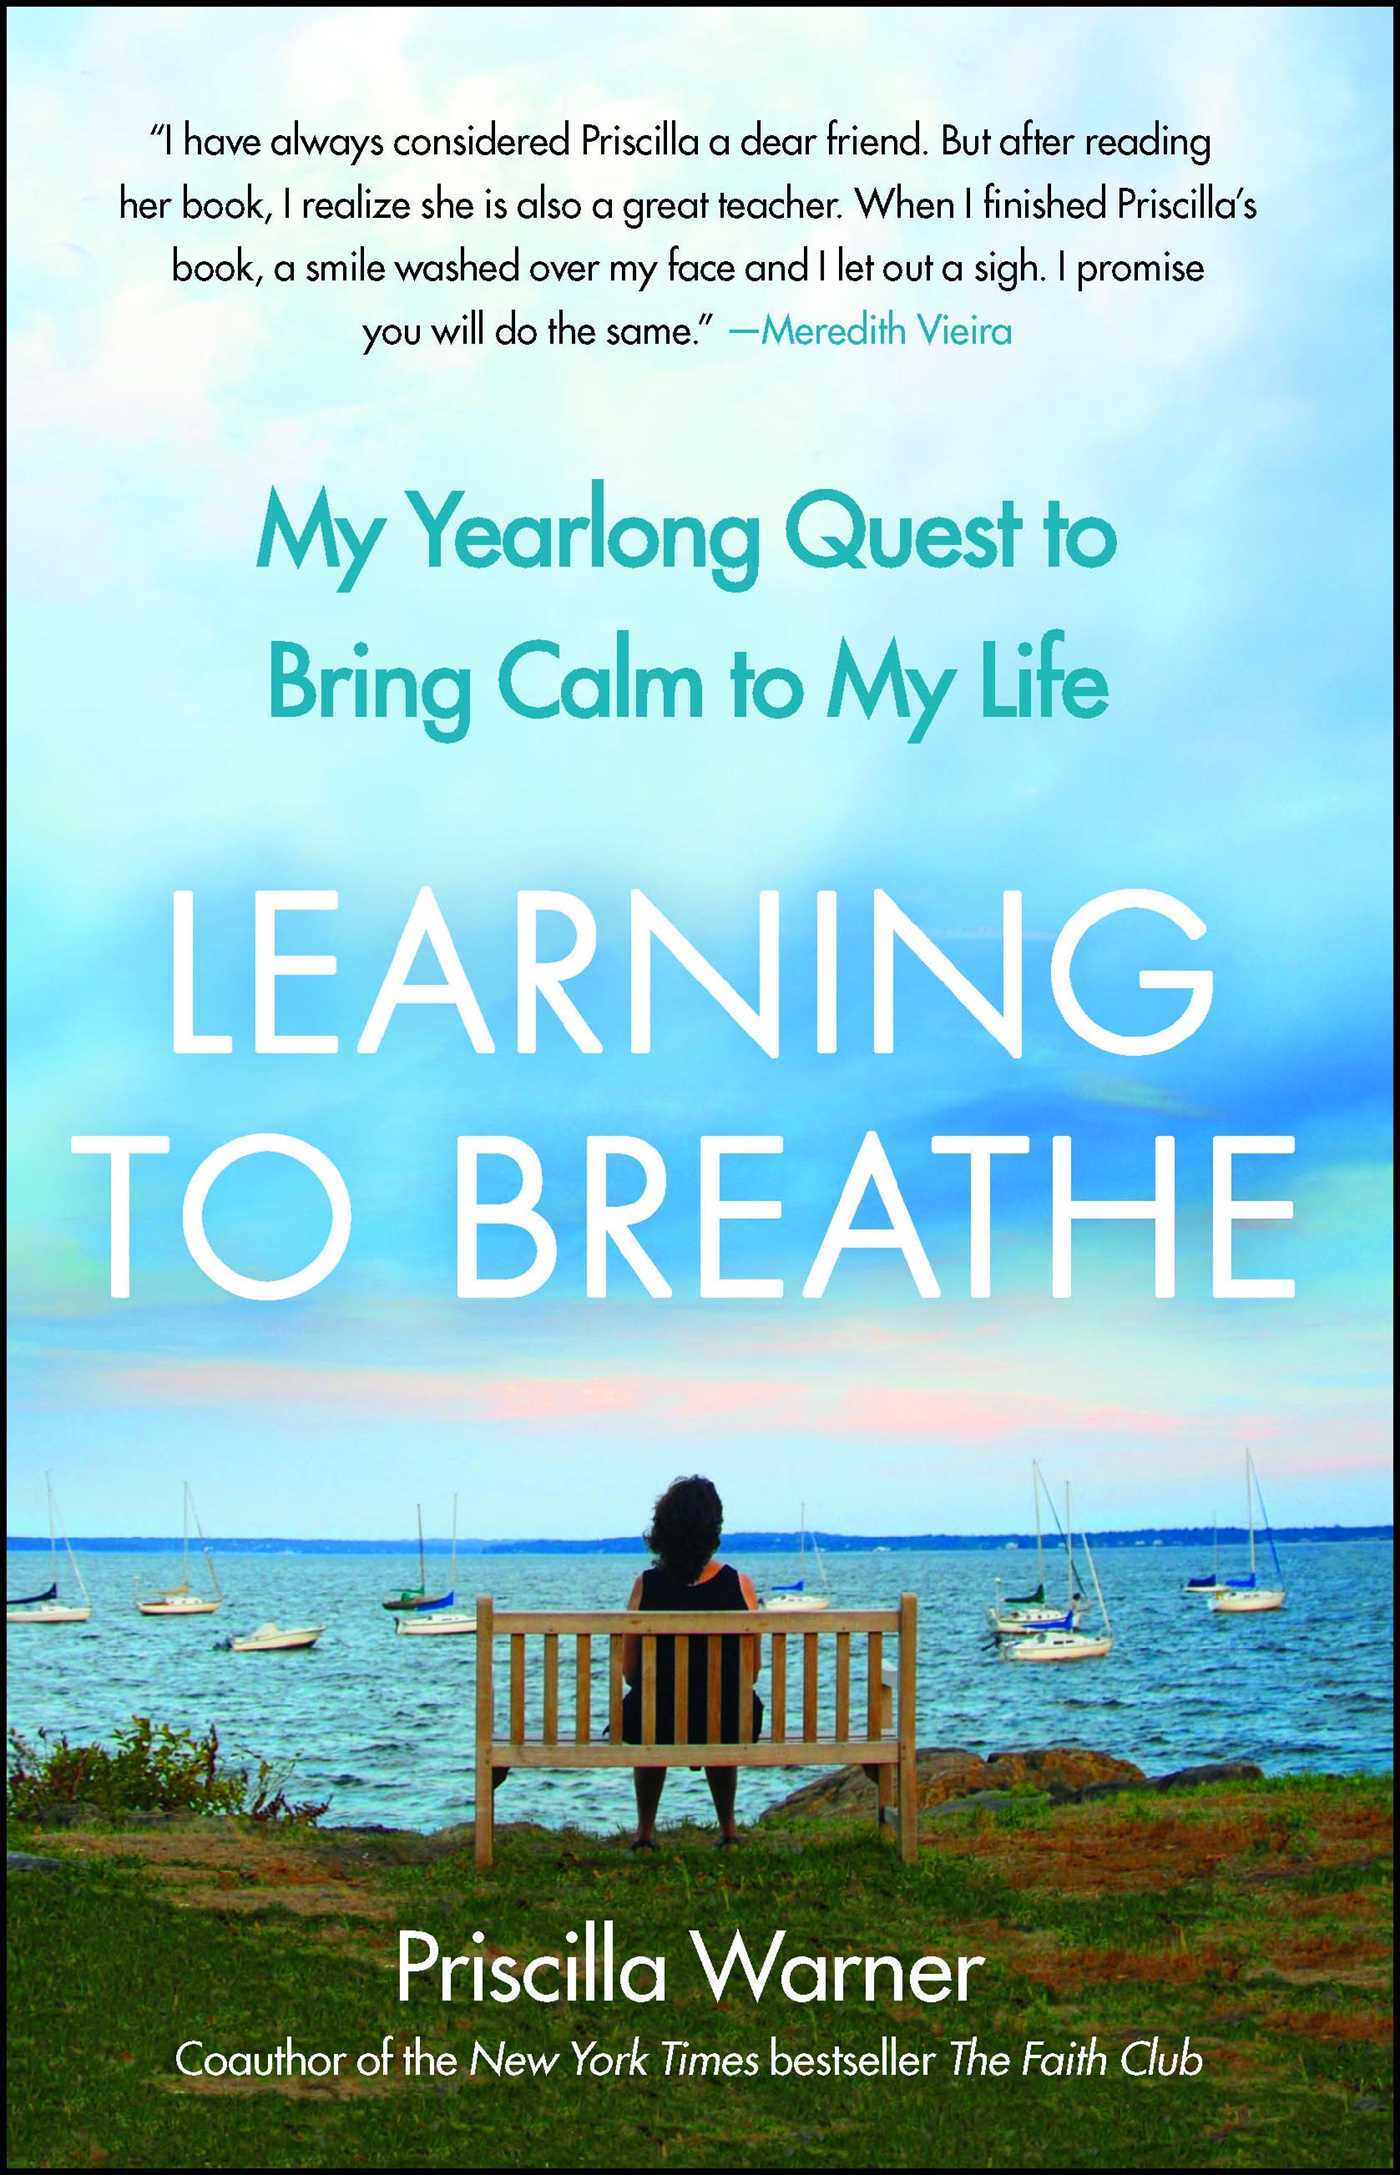 Learning to breathe 9781439181089 hr